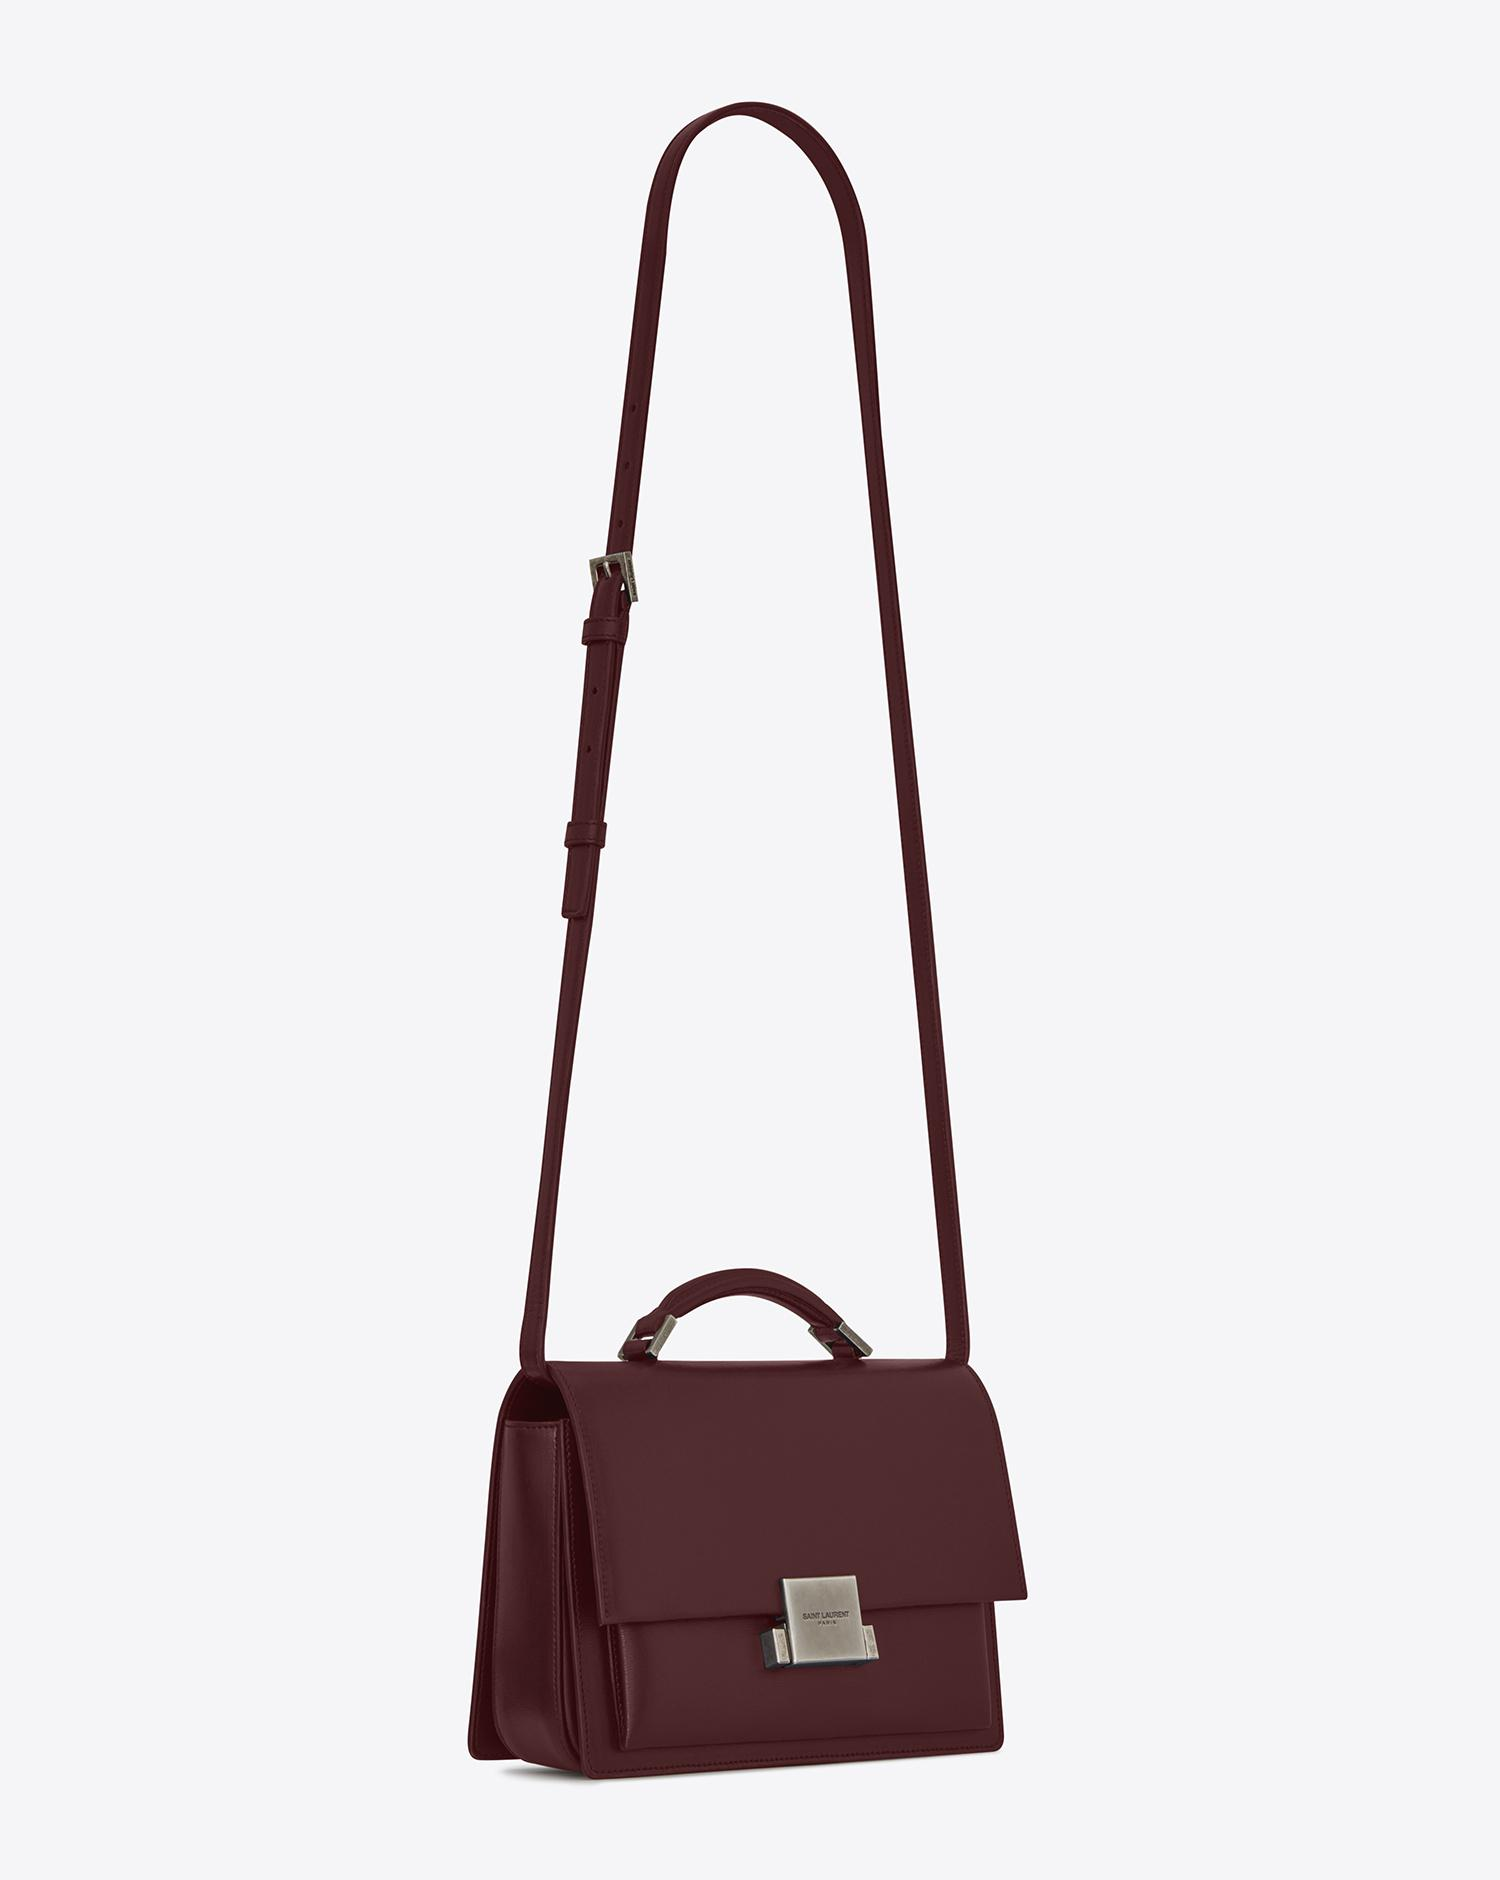 bcc8235b3a Saint Laurent Medium Bellechasse Bag In Dark Red Leather in Red - Lyst